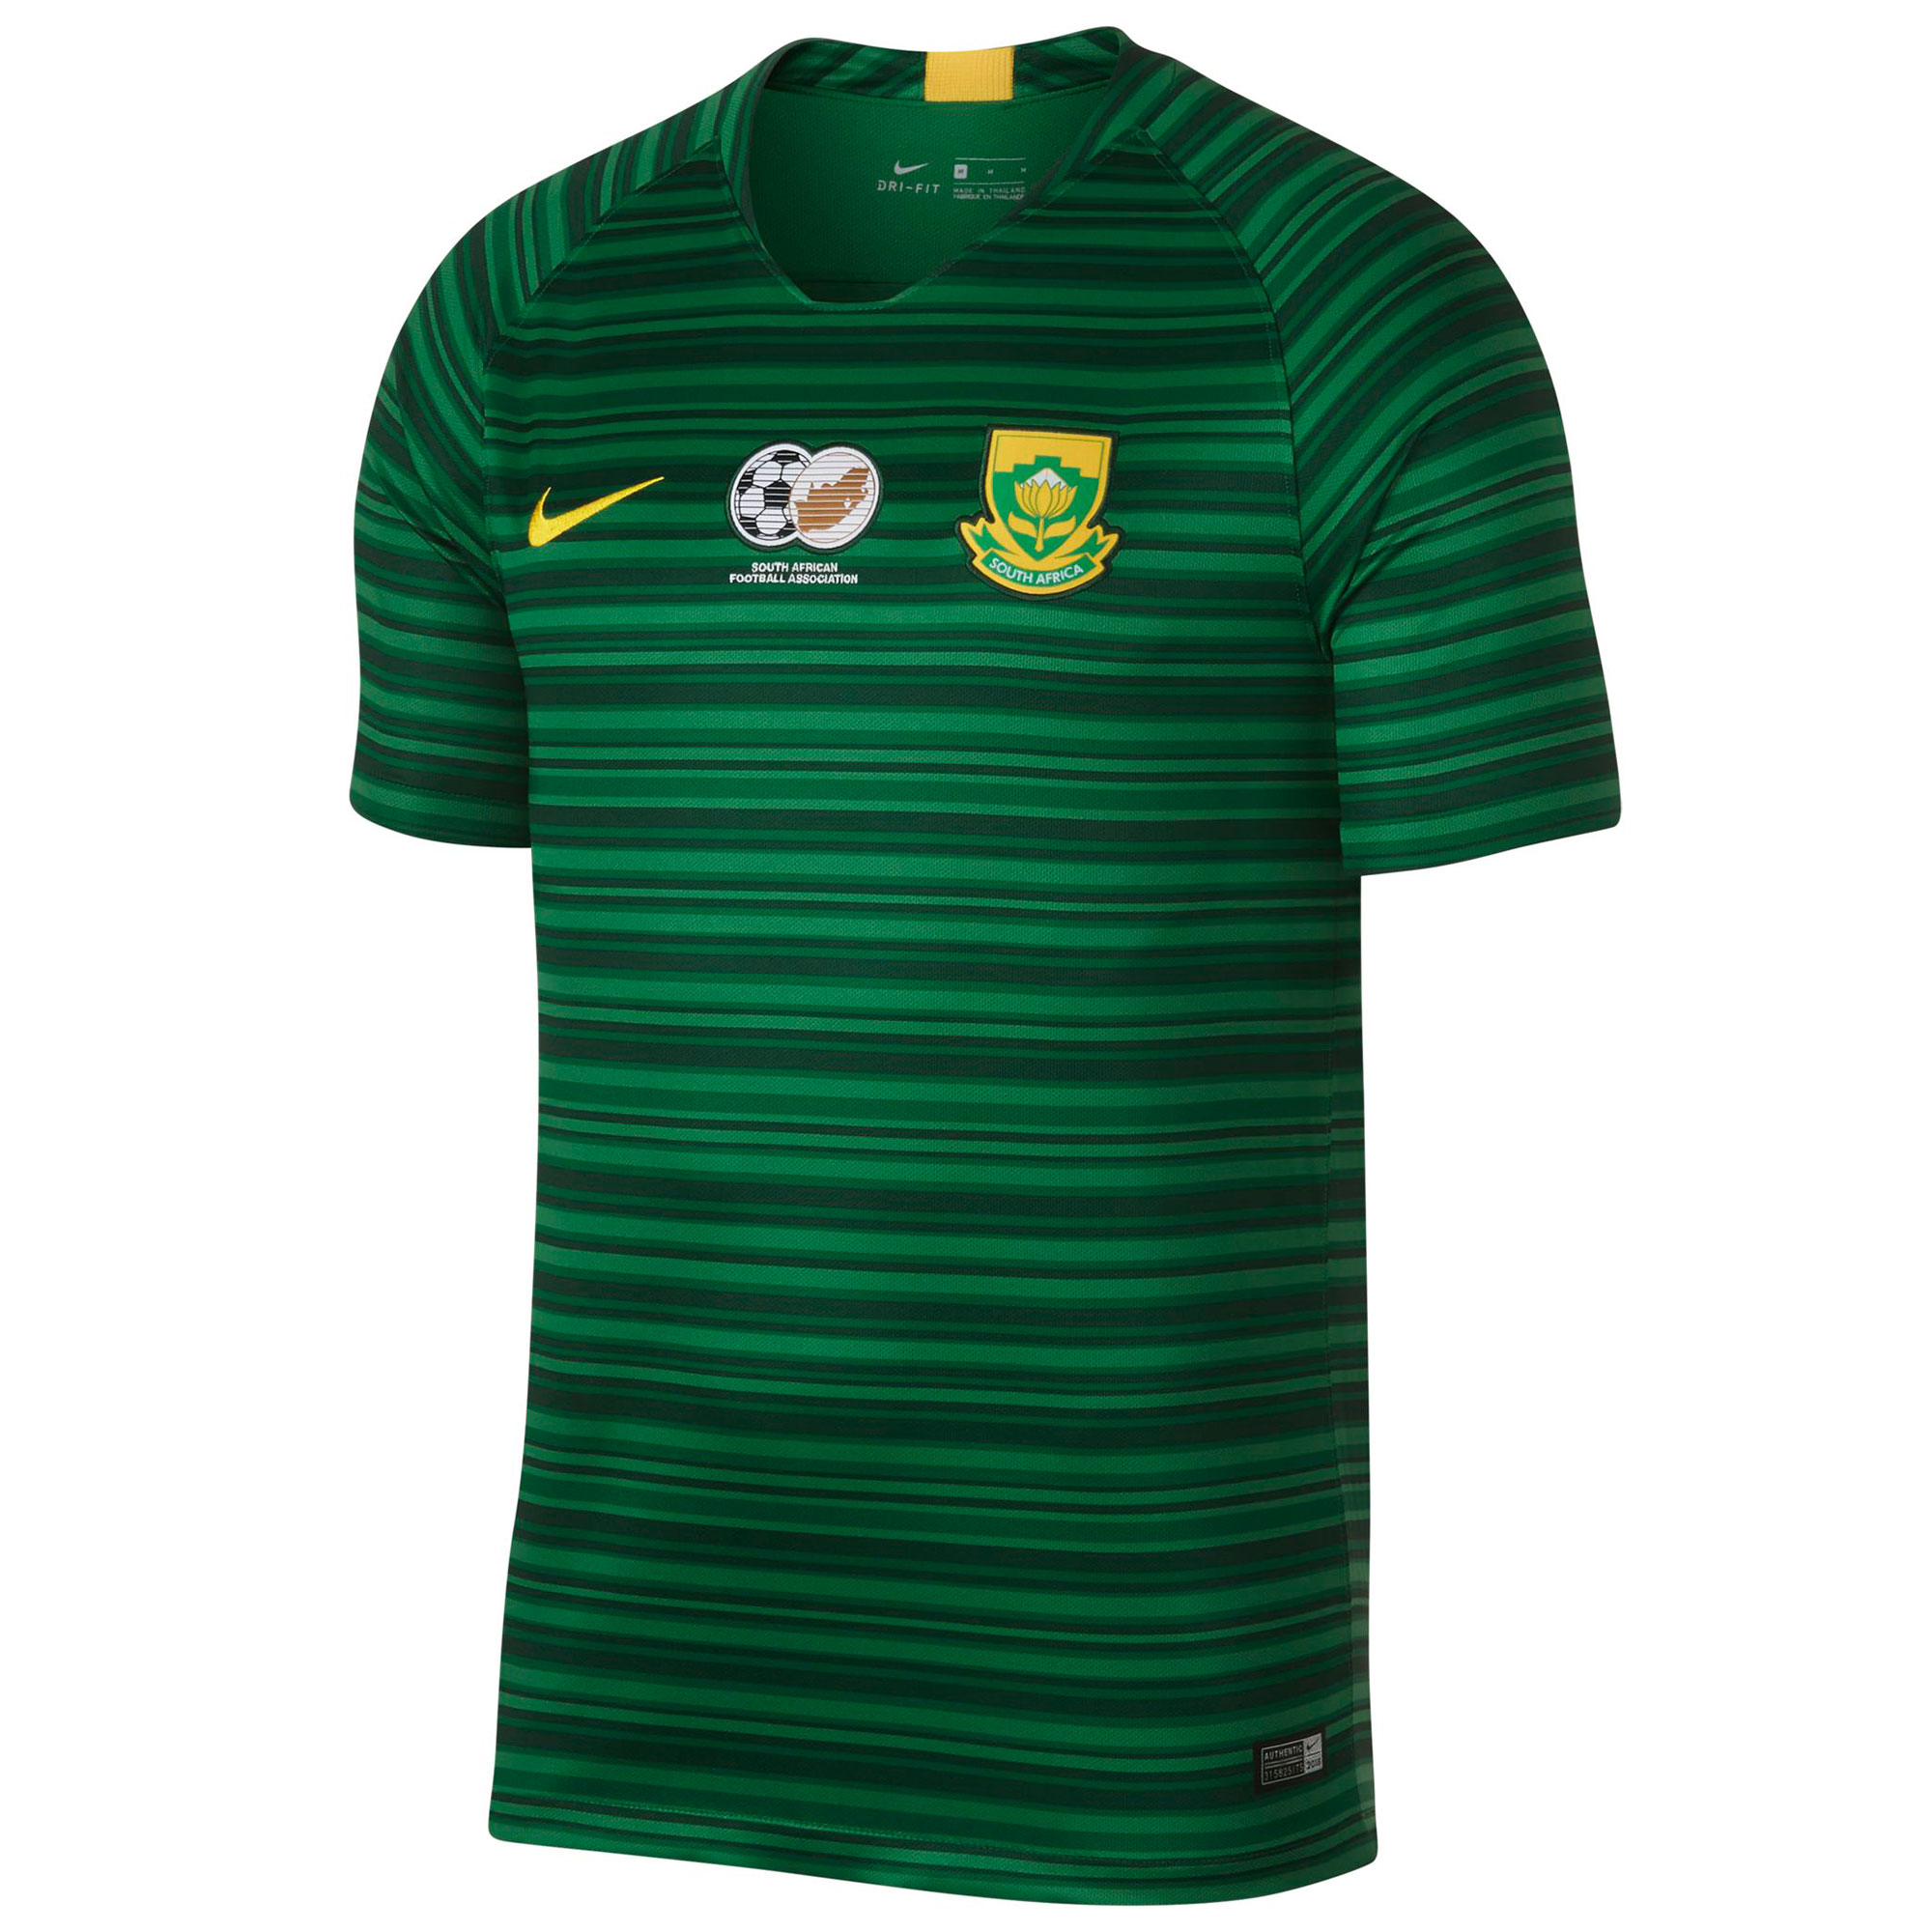 South Africa Away Stadium Shirt 2019-20 - Men's